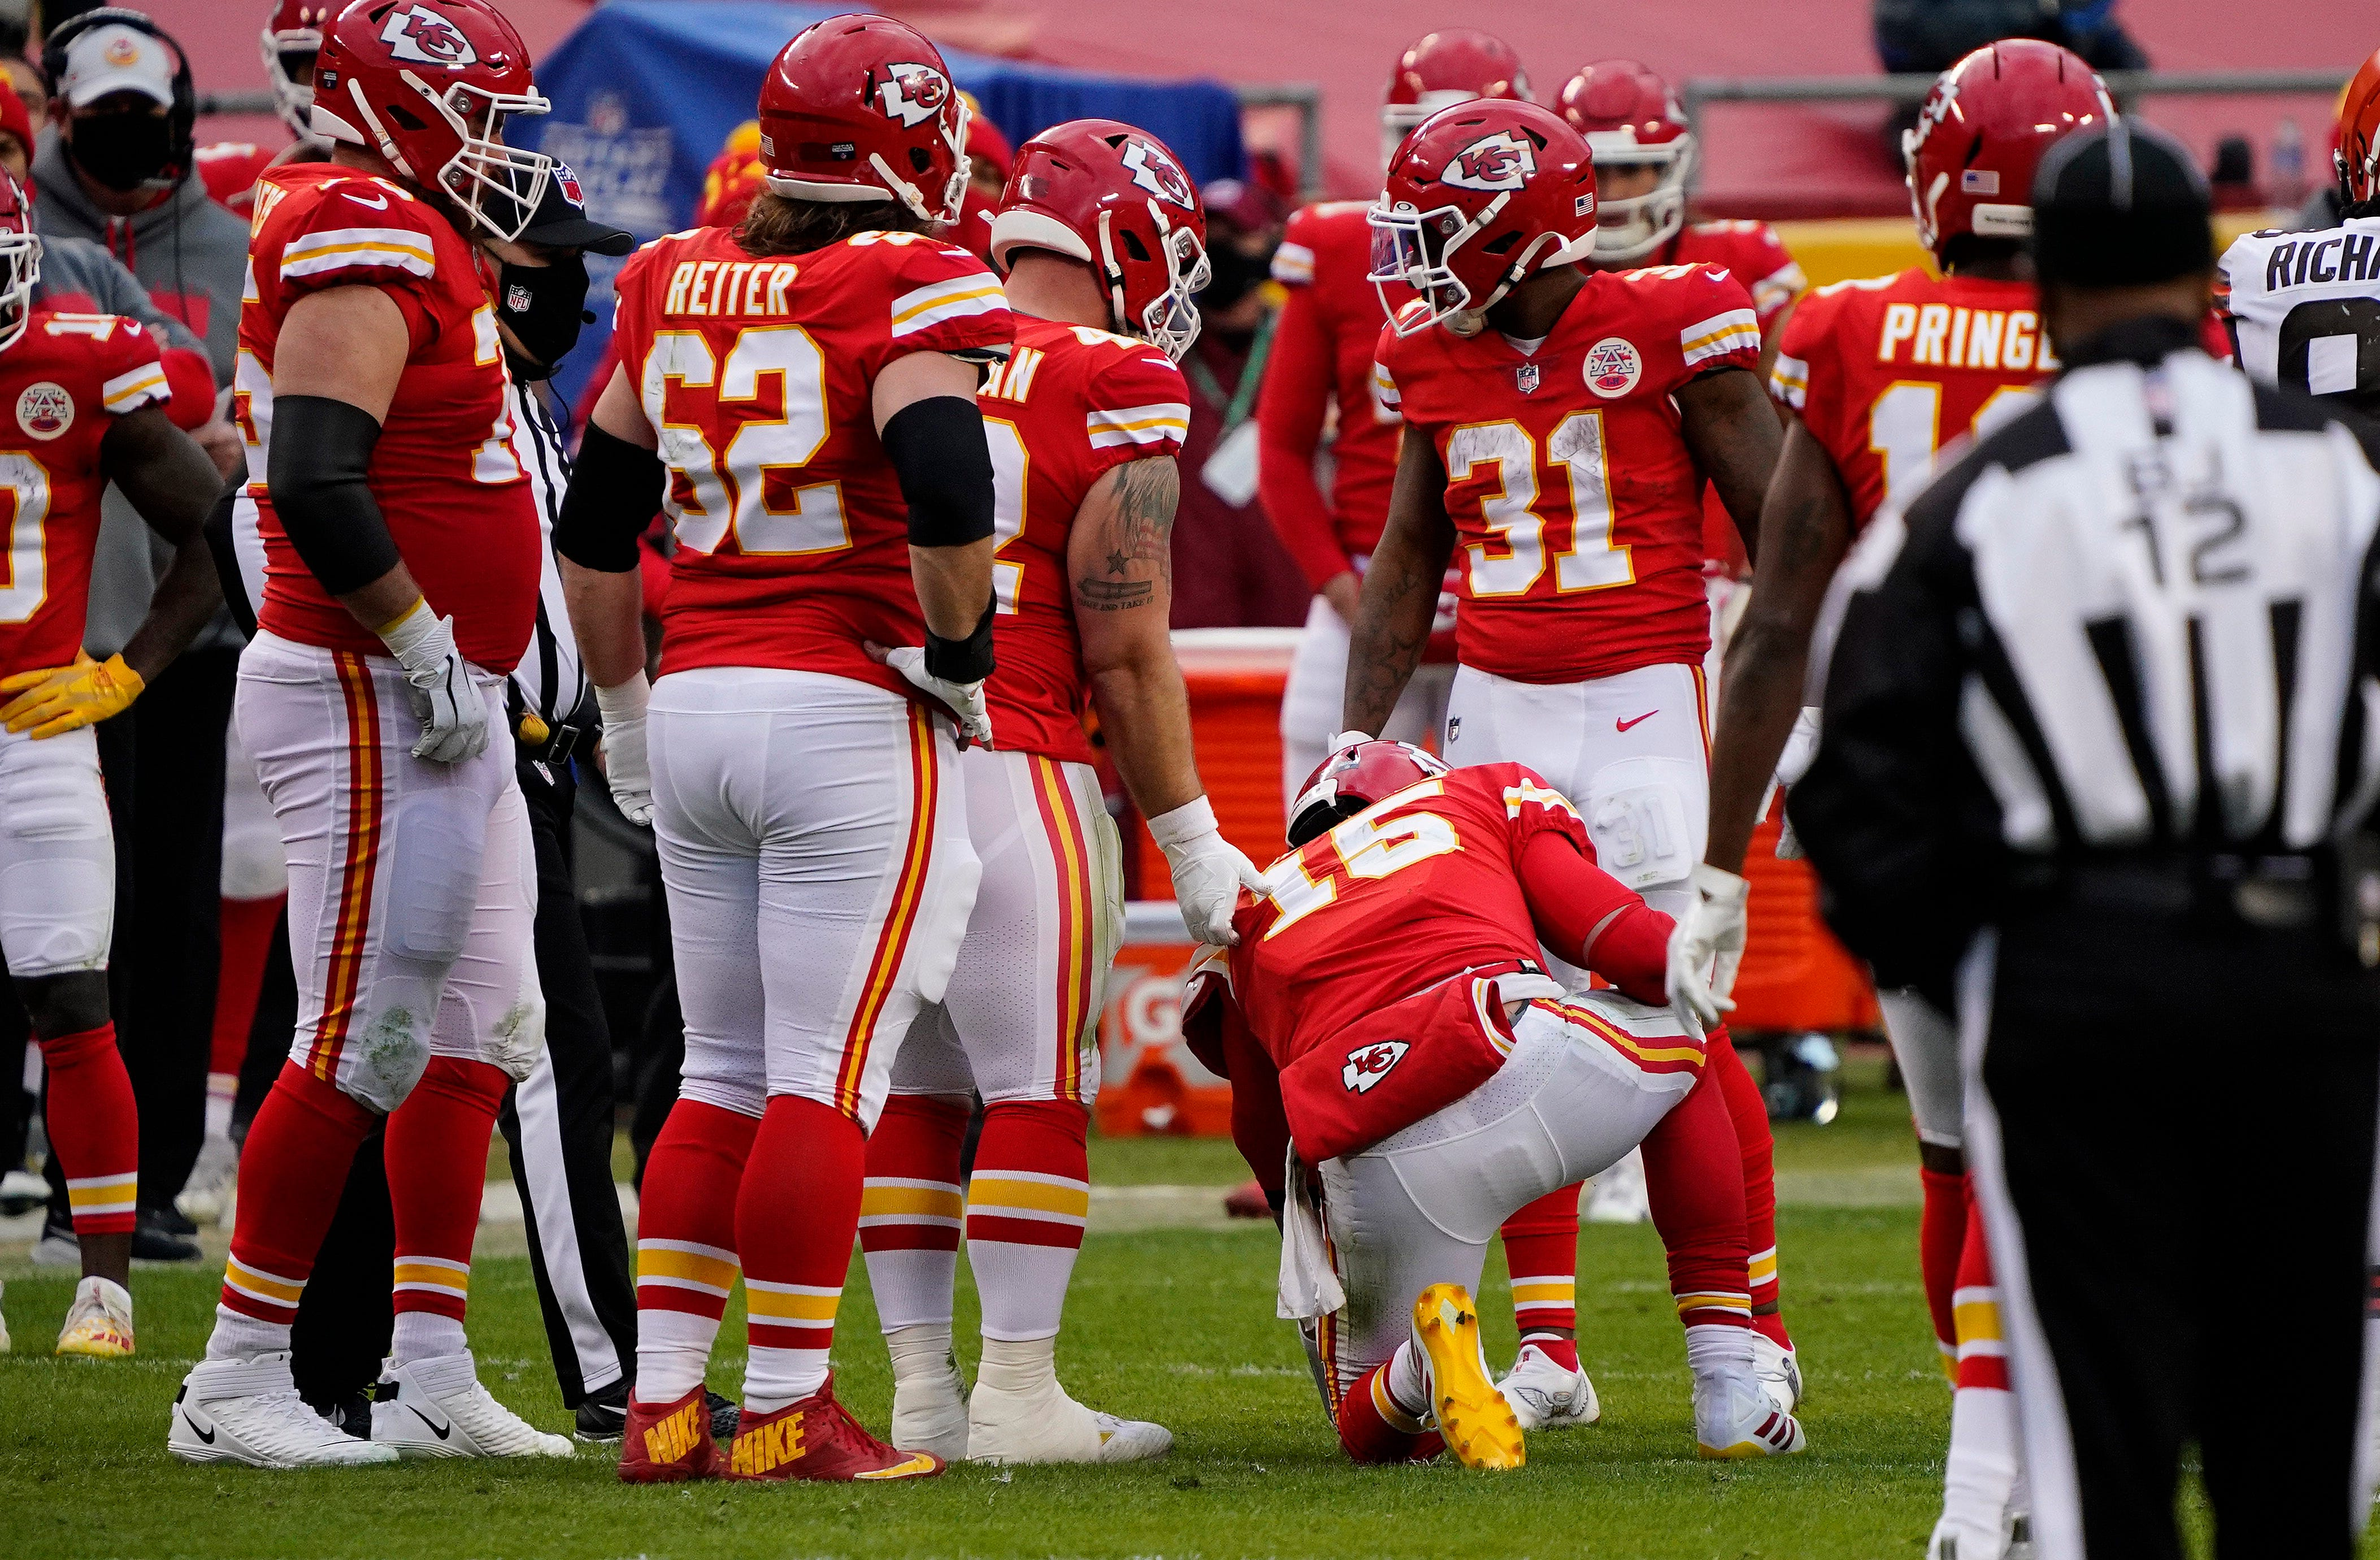 Kansas City Chiefs QB Patrick Mahomes takes 'all the snaps' in practice as concussion protocol continues